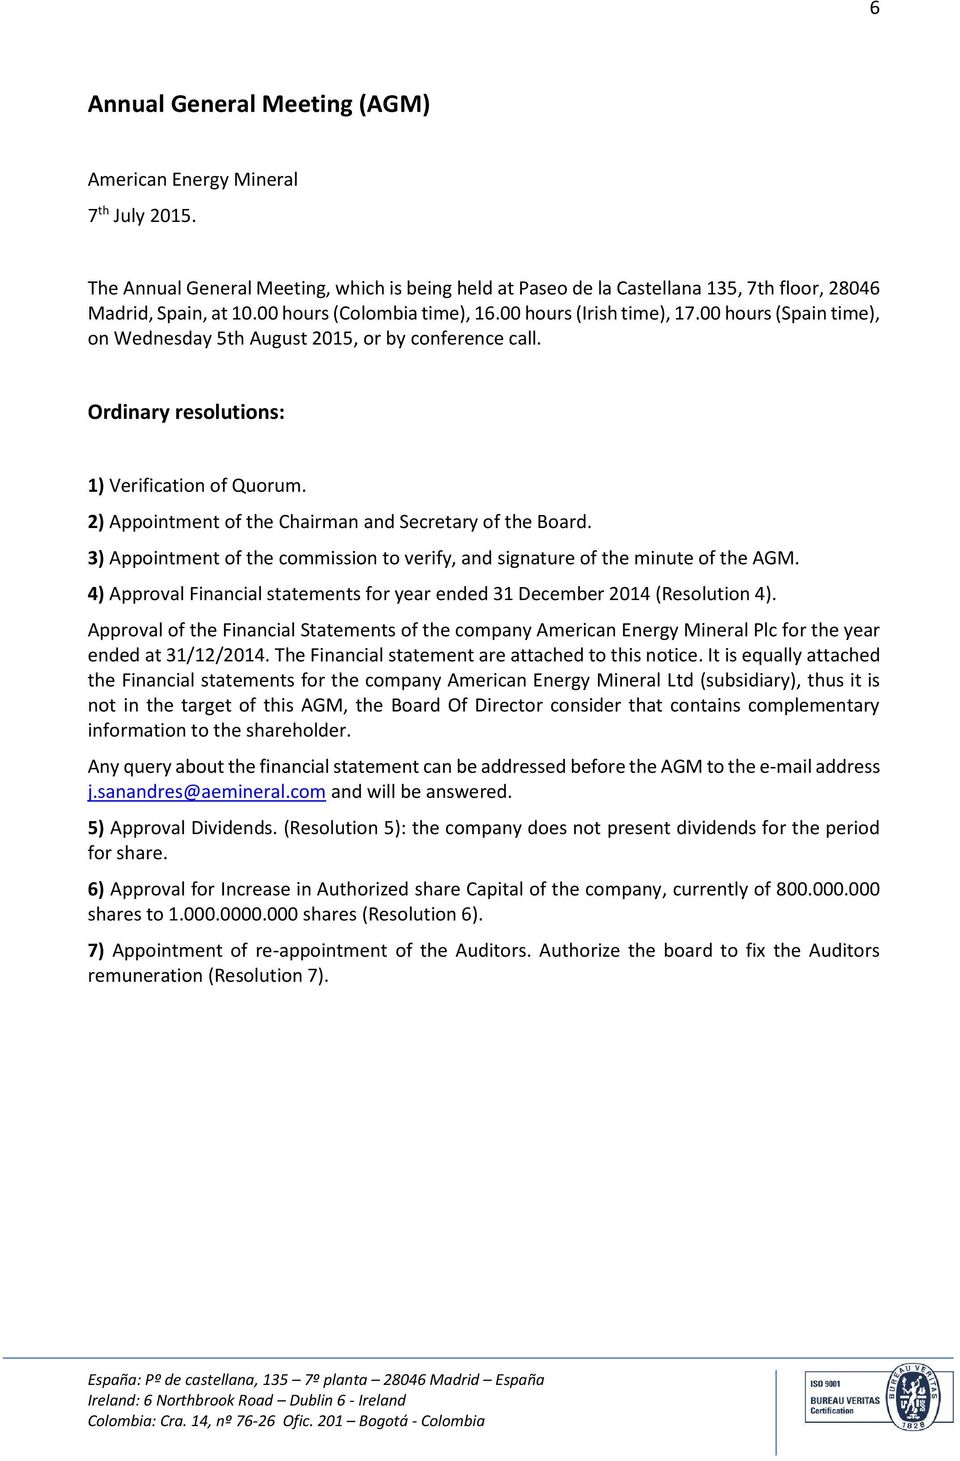 2) Appointment of the Chairman and Secretary of the Board. 3) Appointment of the commission to verify, and signature of the minute of the AGM.